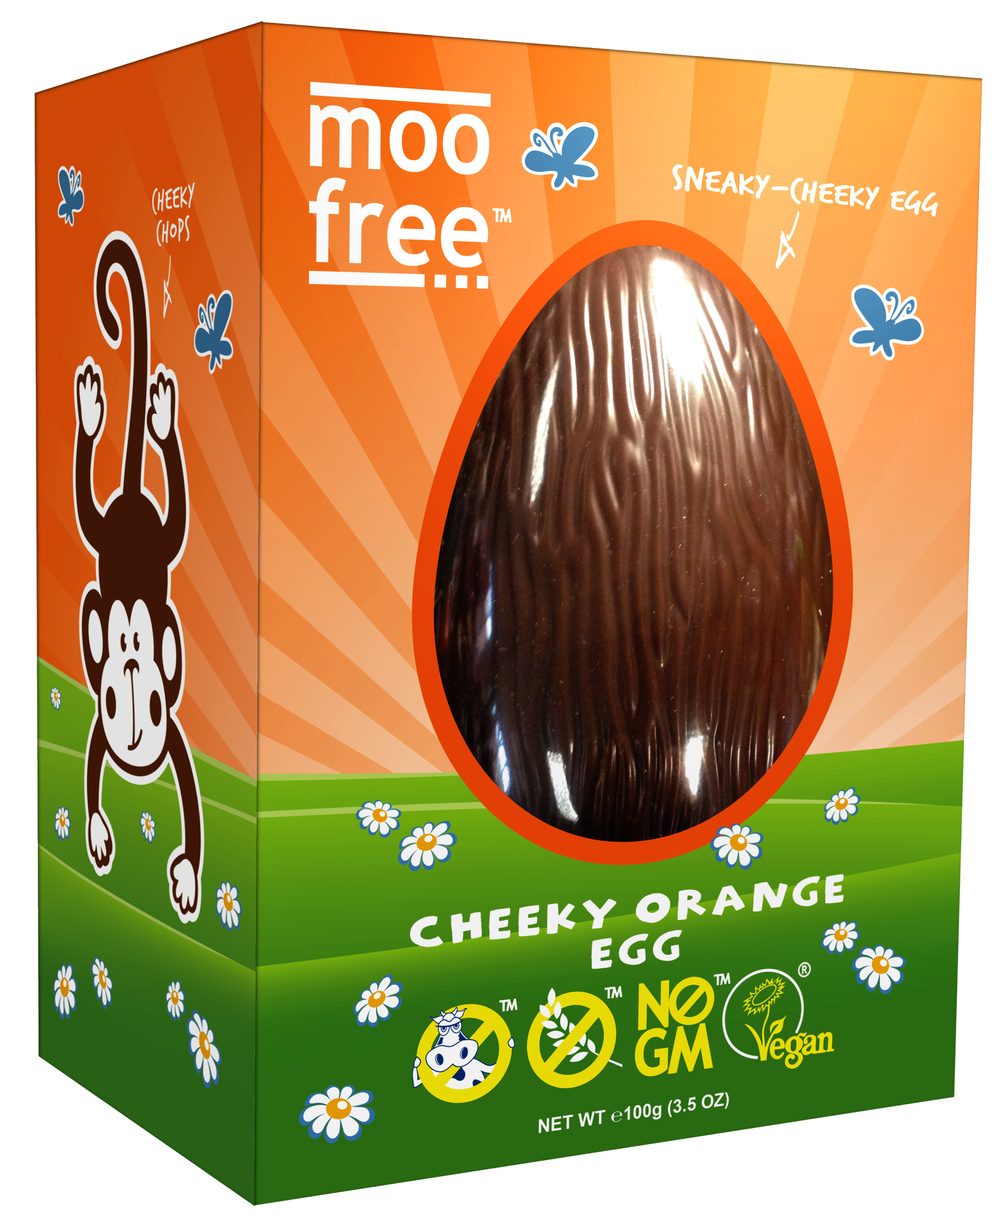 moo-free-orange-easter-egg-hi-res.jpg